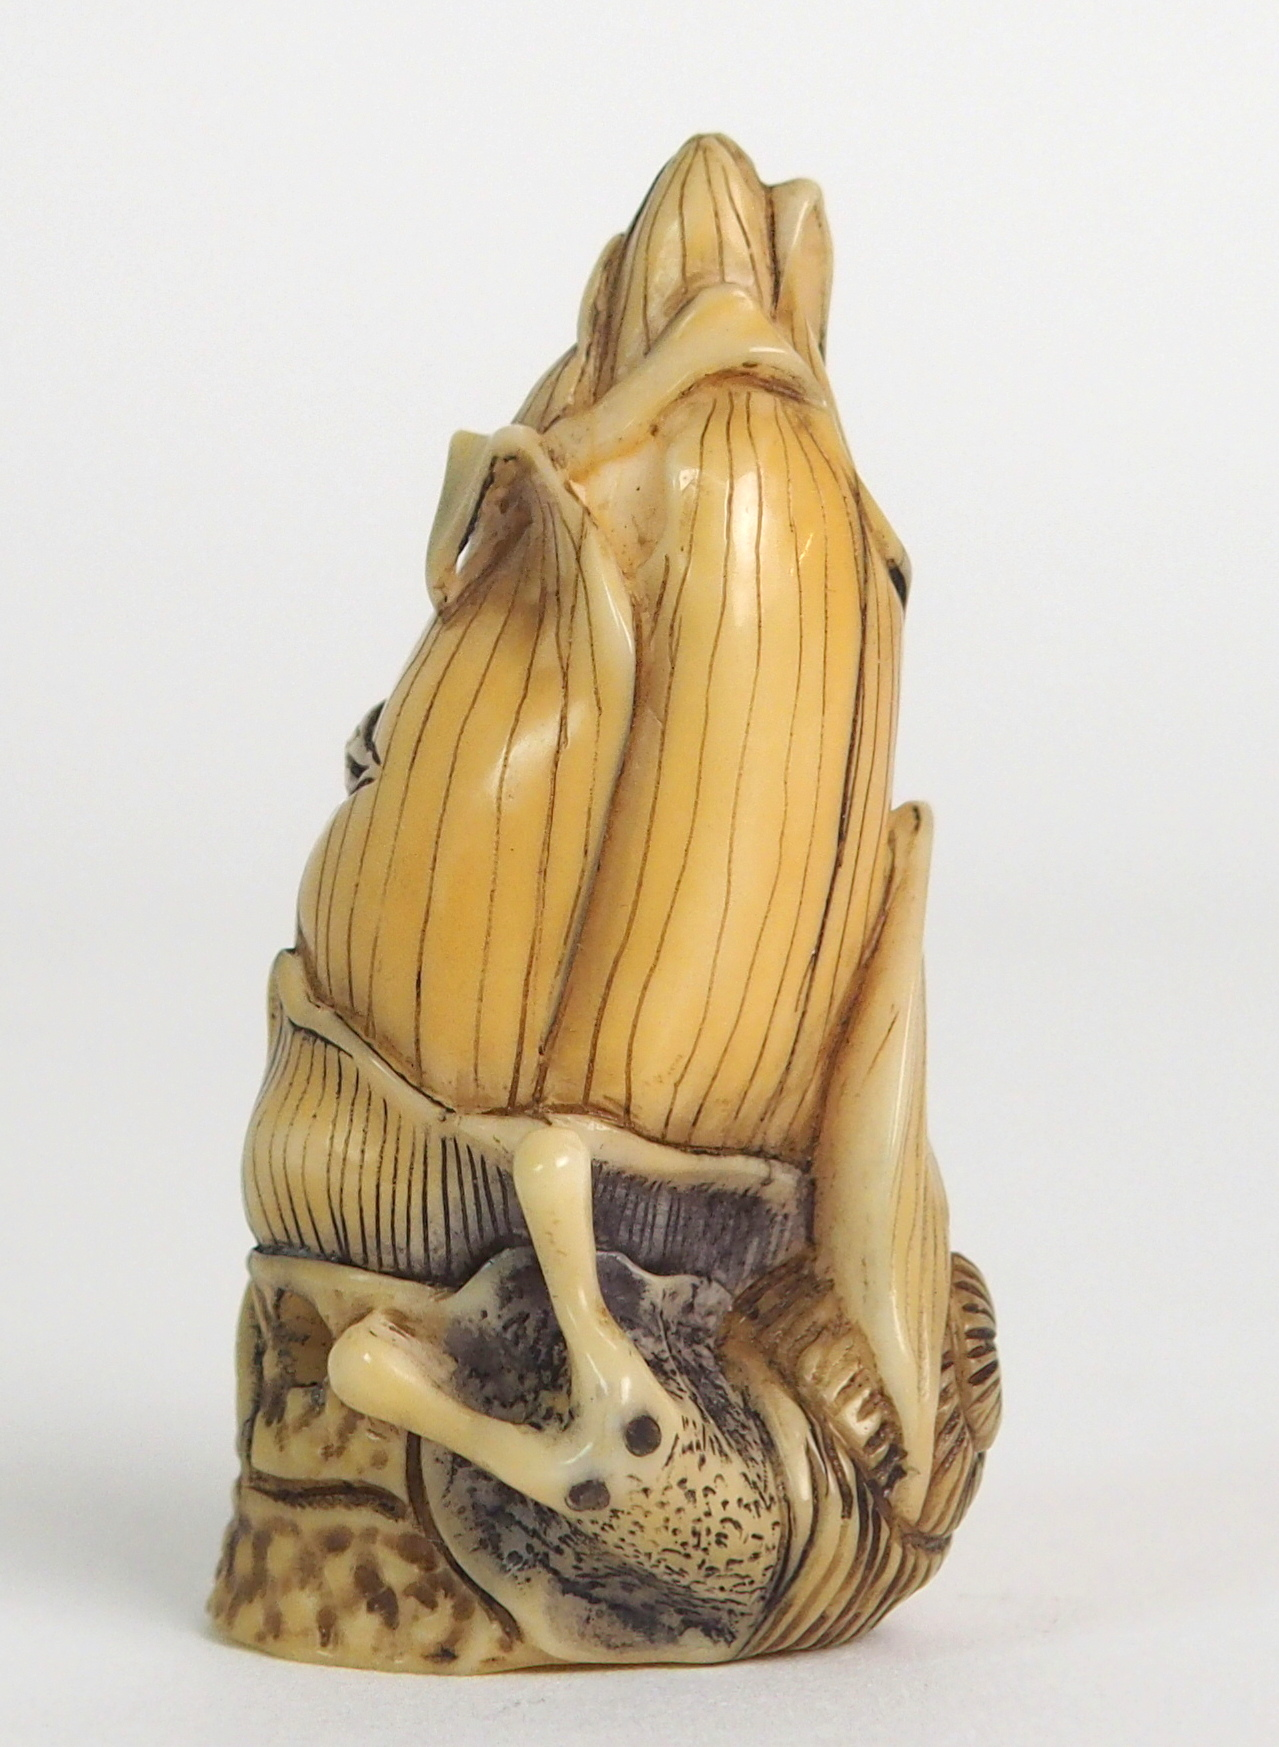 Lot 65 - A JAPANESE IVORY NETSUKE coloured and carved with a snail wrapped around a corn tassle, signed, 5m